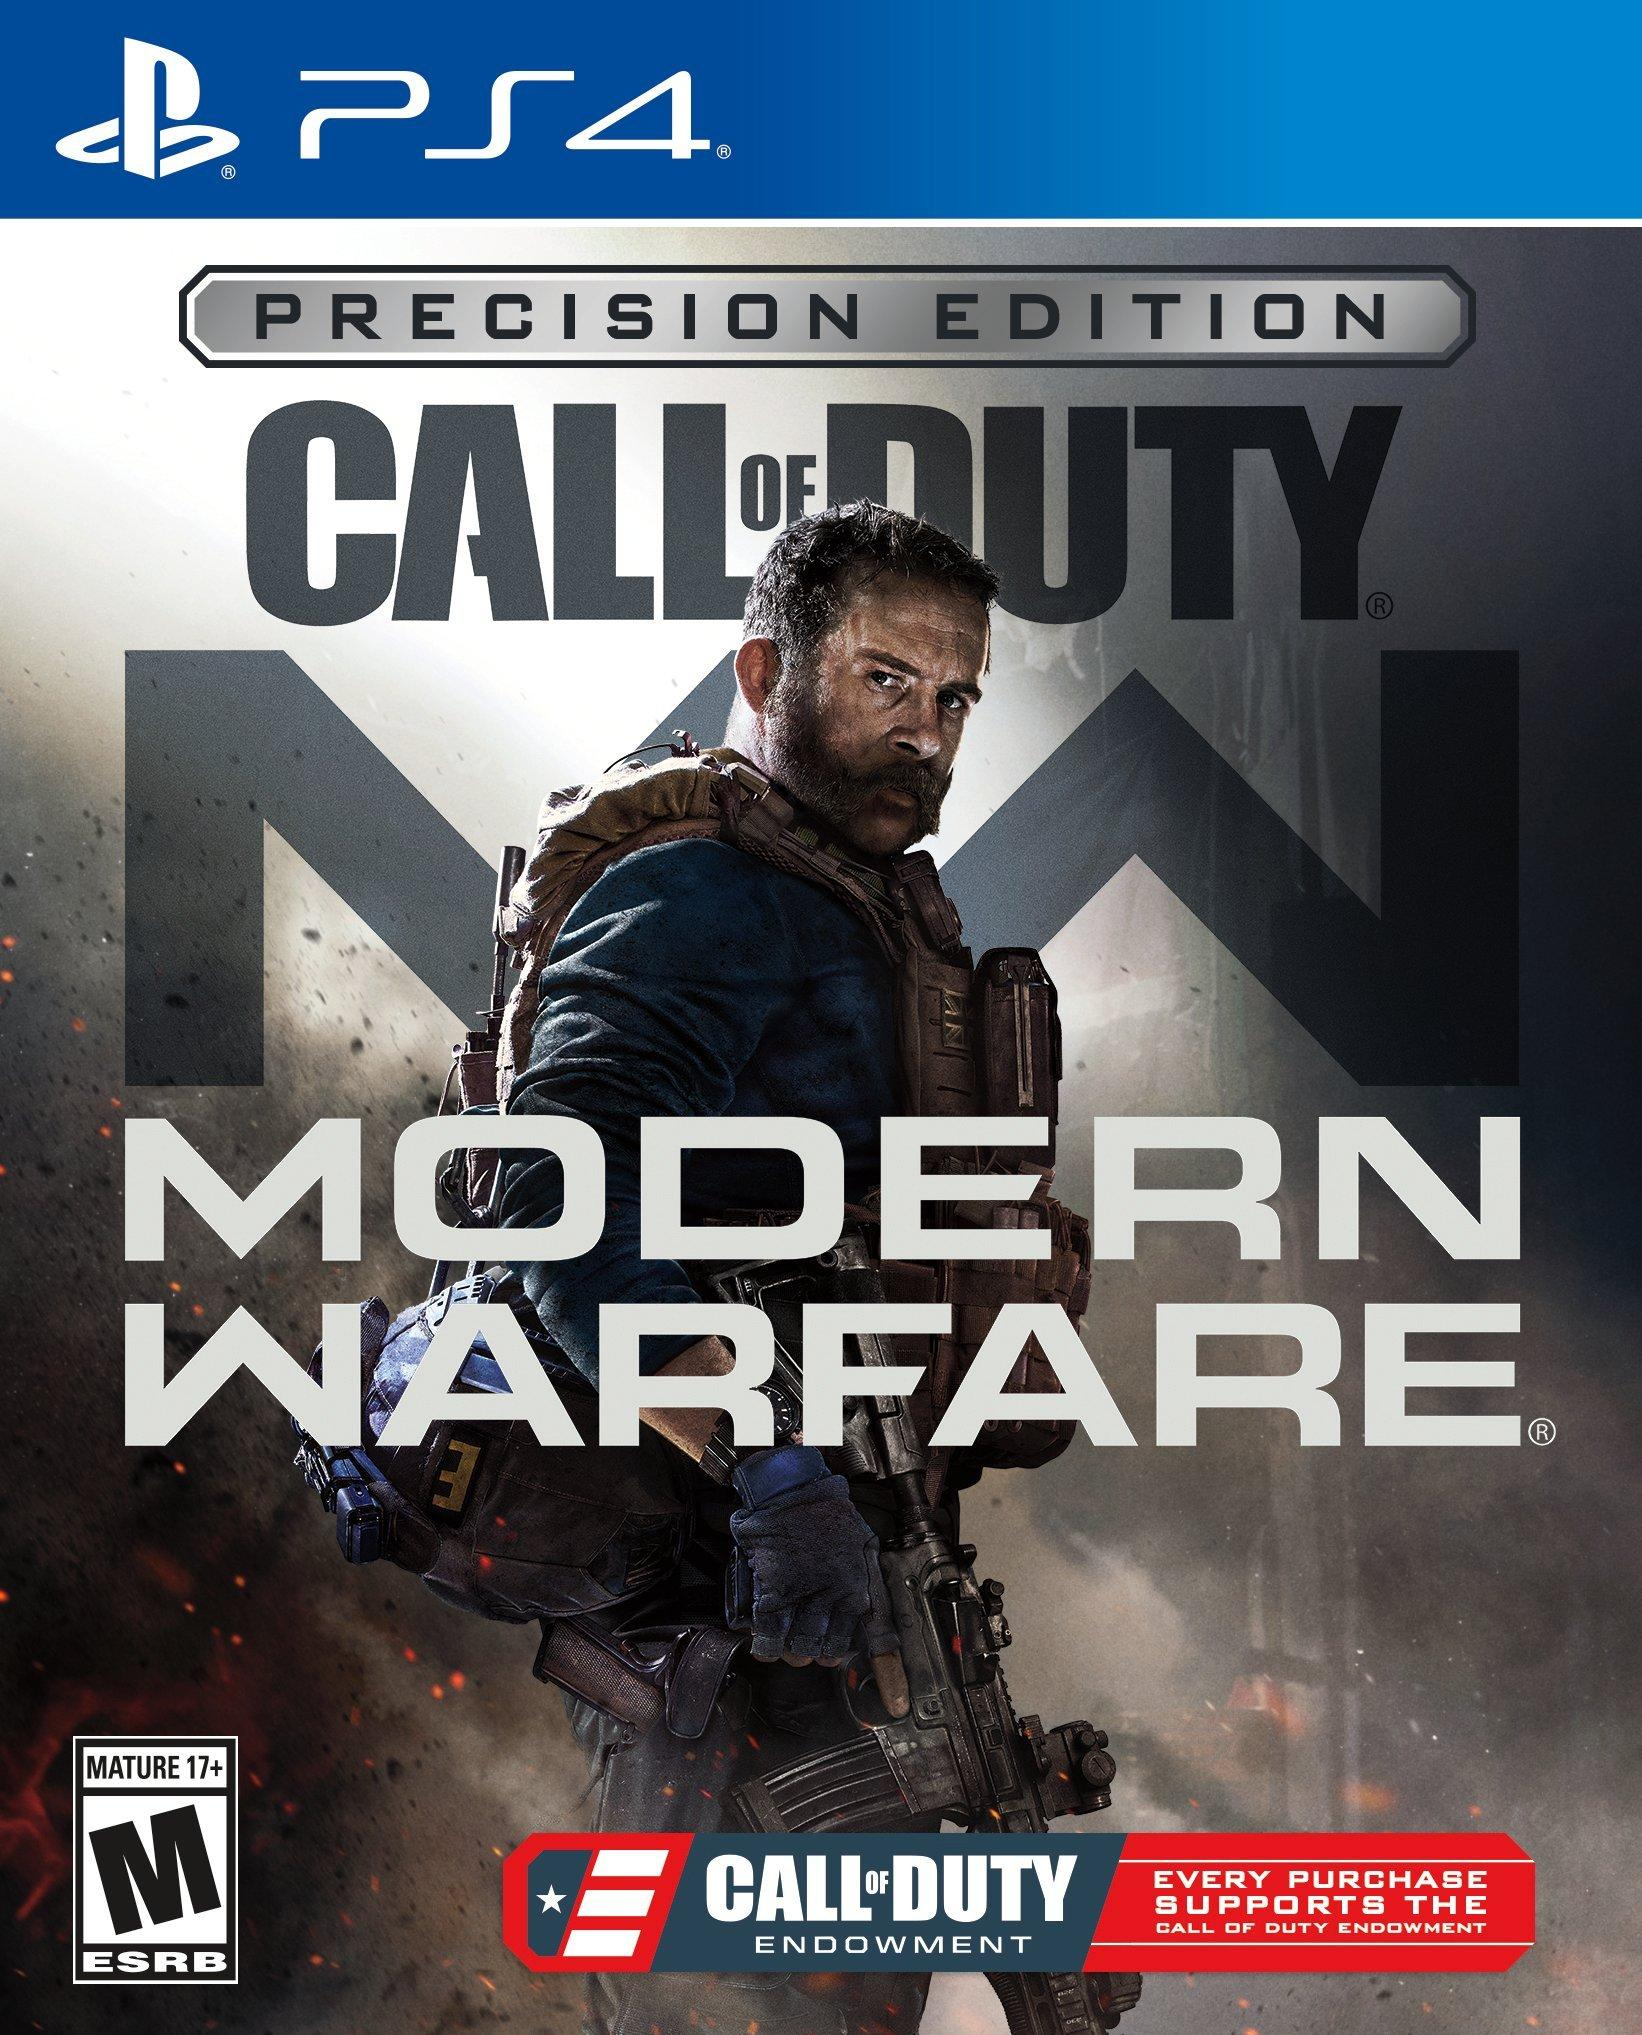 Call of Duty: Modern Warfare C O D E Precision Edition - Only at GameStop |  PlayStation 4 | GameStop